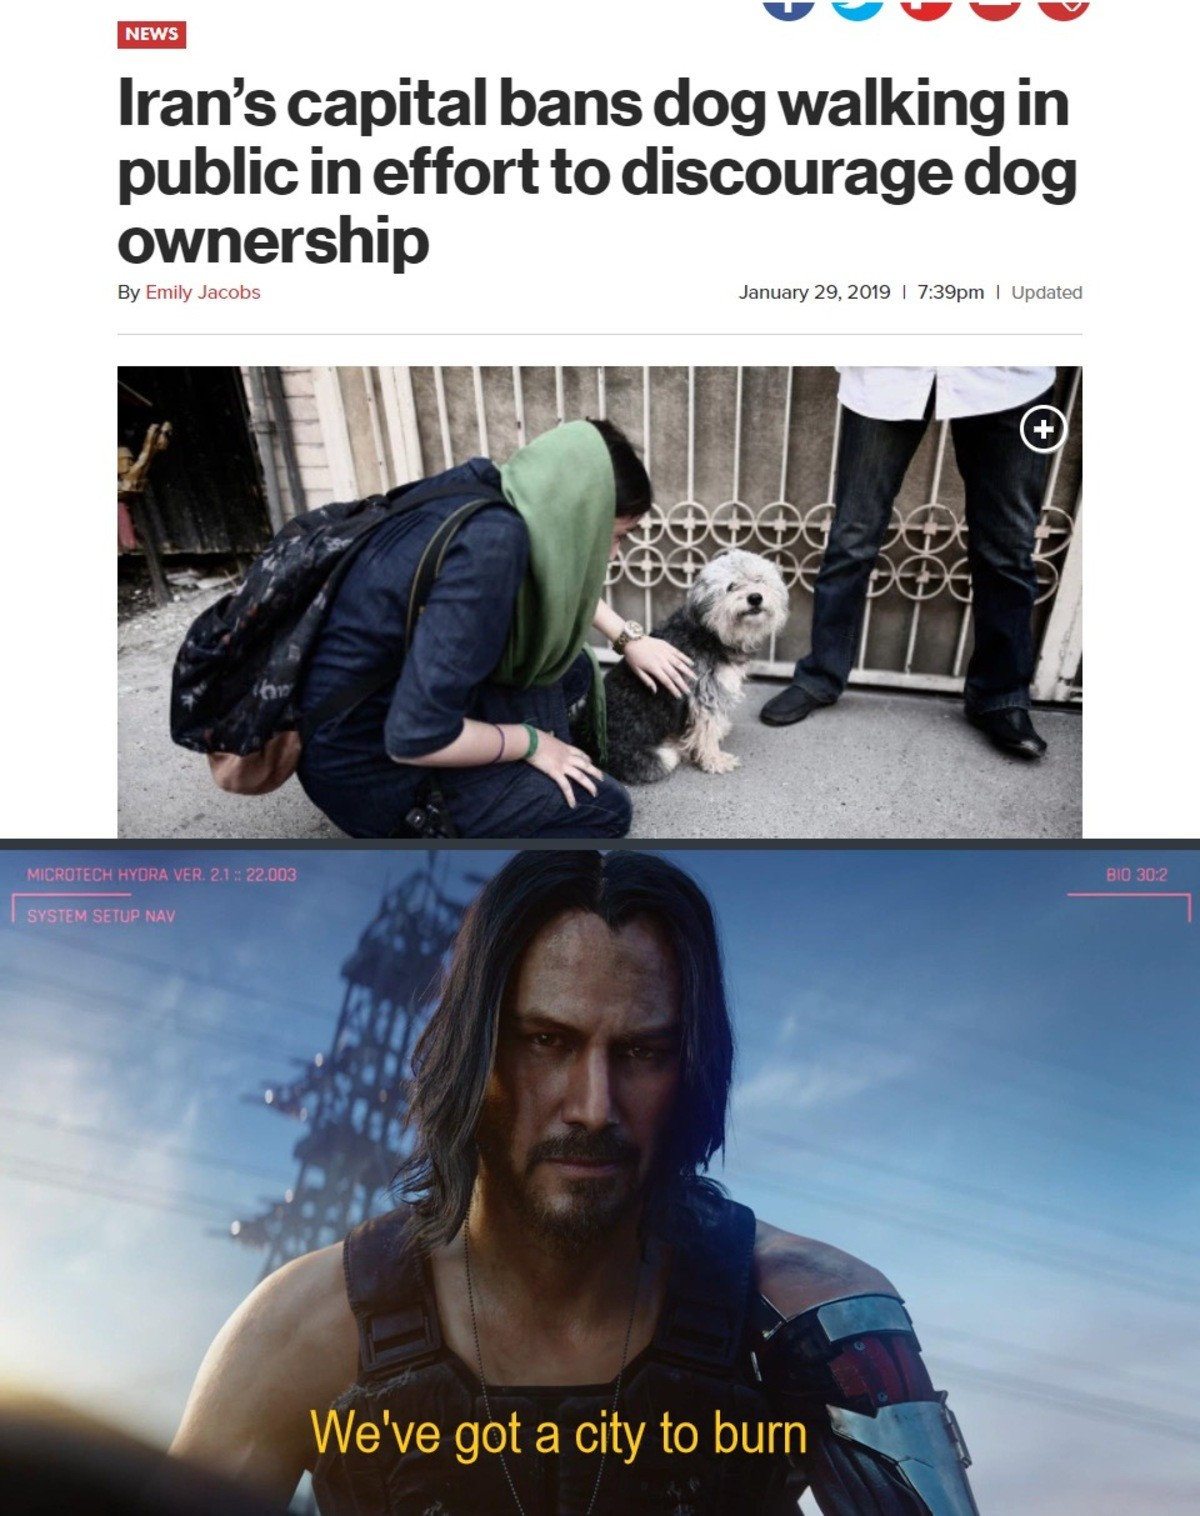 John Wick 2077. .. My most radical and uncompromising prejudice is that cultures that view dogs negatively are inherently inferior cultures and of objectively less value to the wo